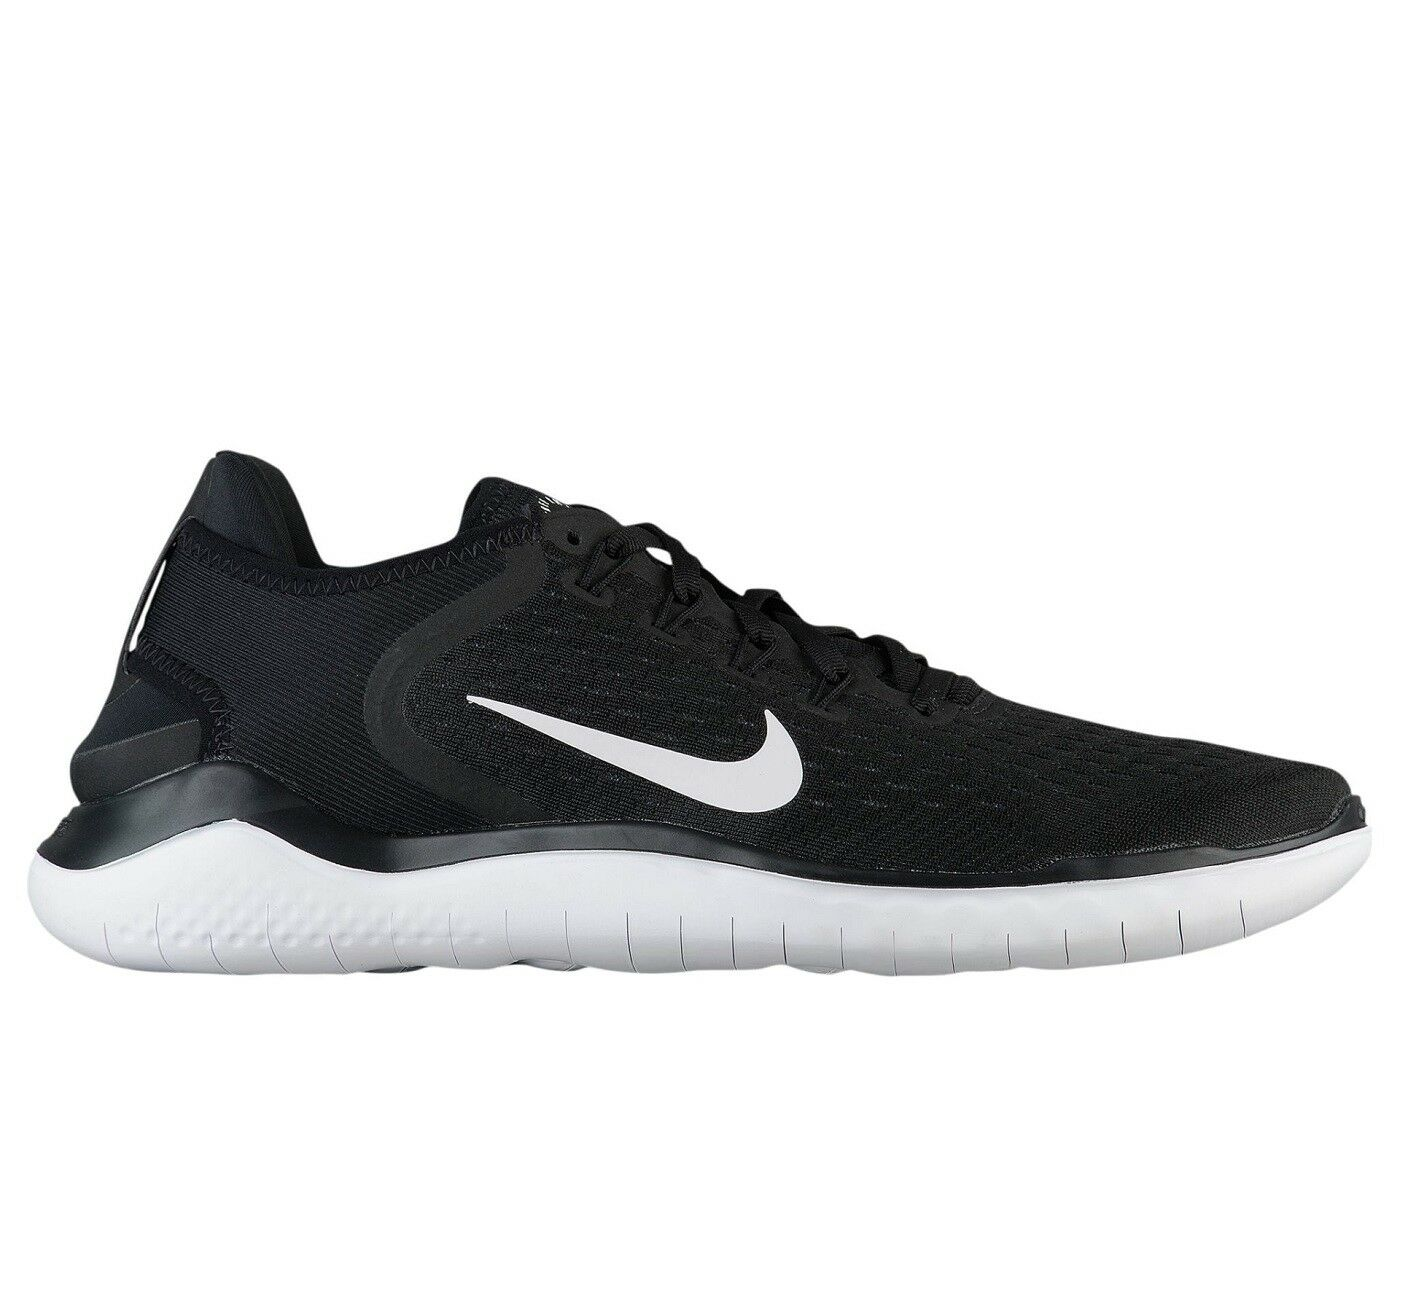 Nike Free RN 2018 Mens 942836-001 Black White Knit Running Shoes Size 8